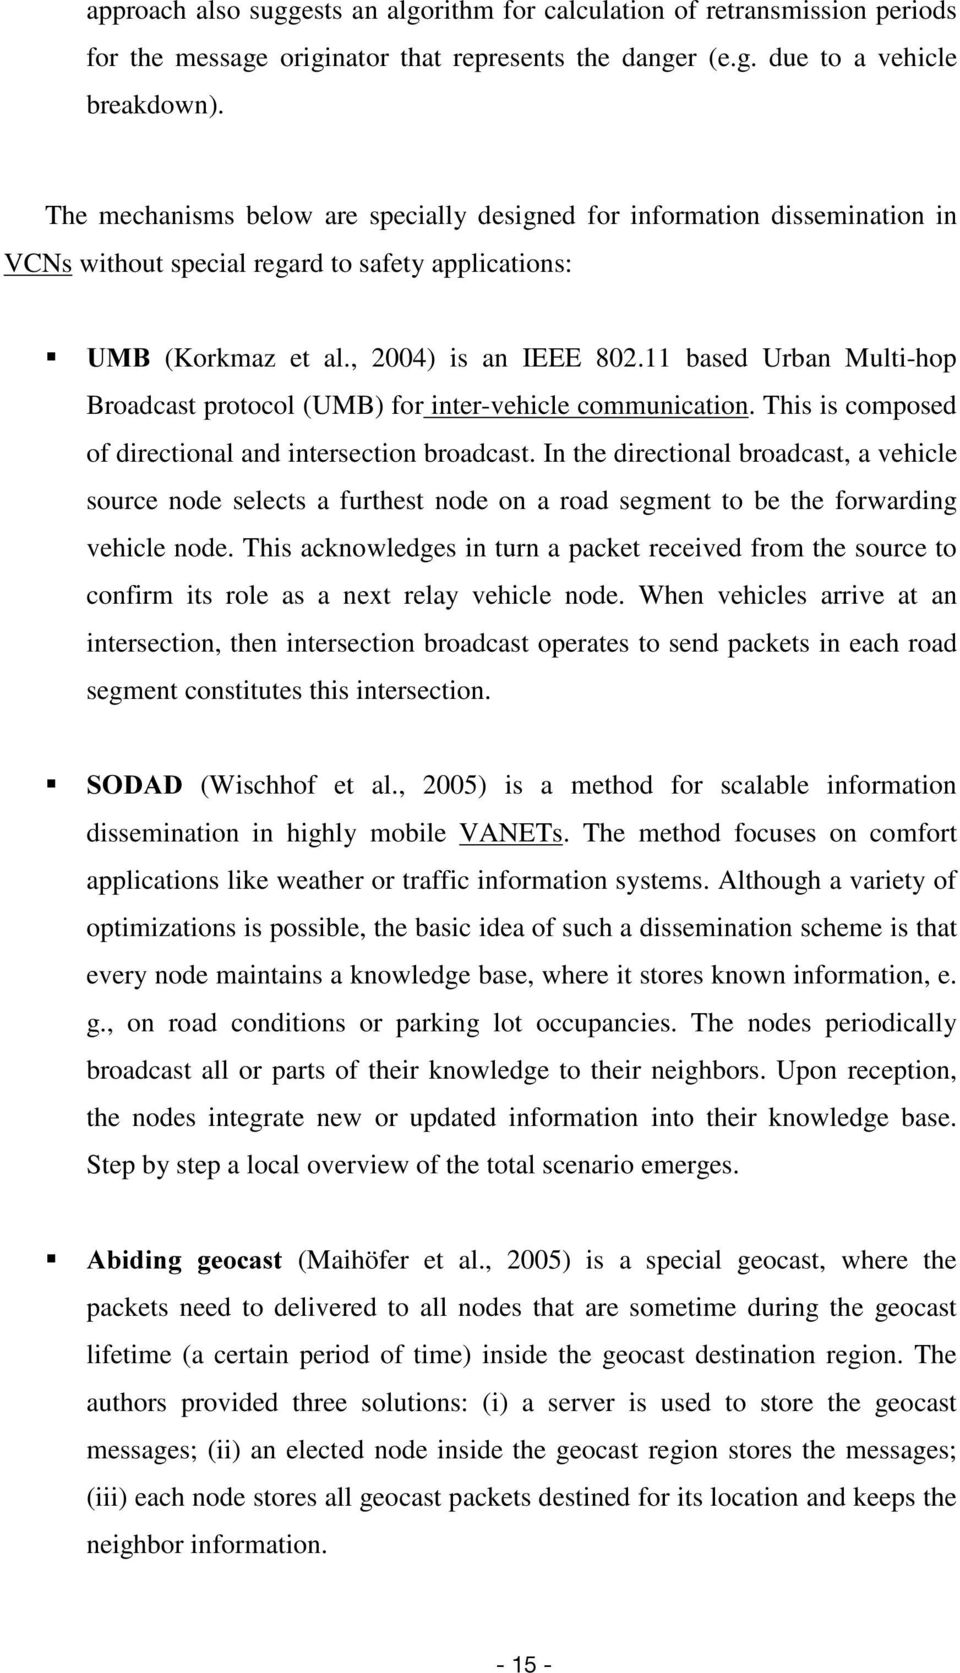 11 based Urban Multi-hop Broadcast protocol (UMB) for inter-vehicle communication. This is composed of directional and intersection broadcast.